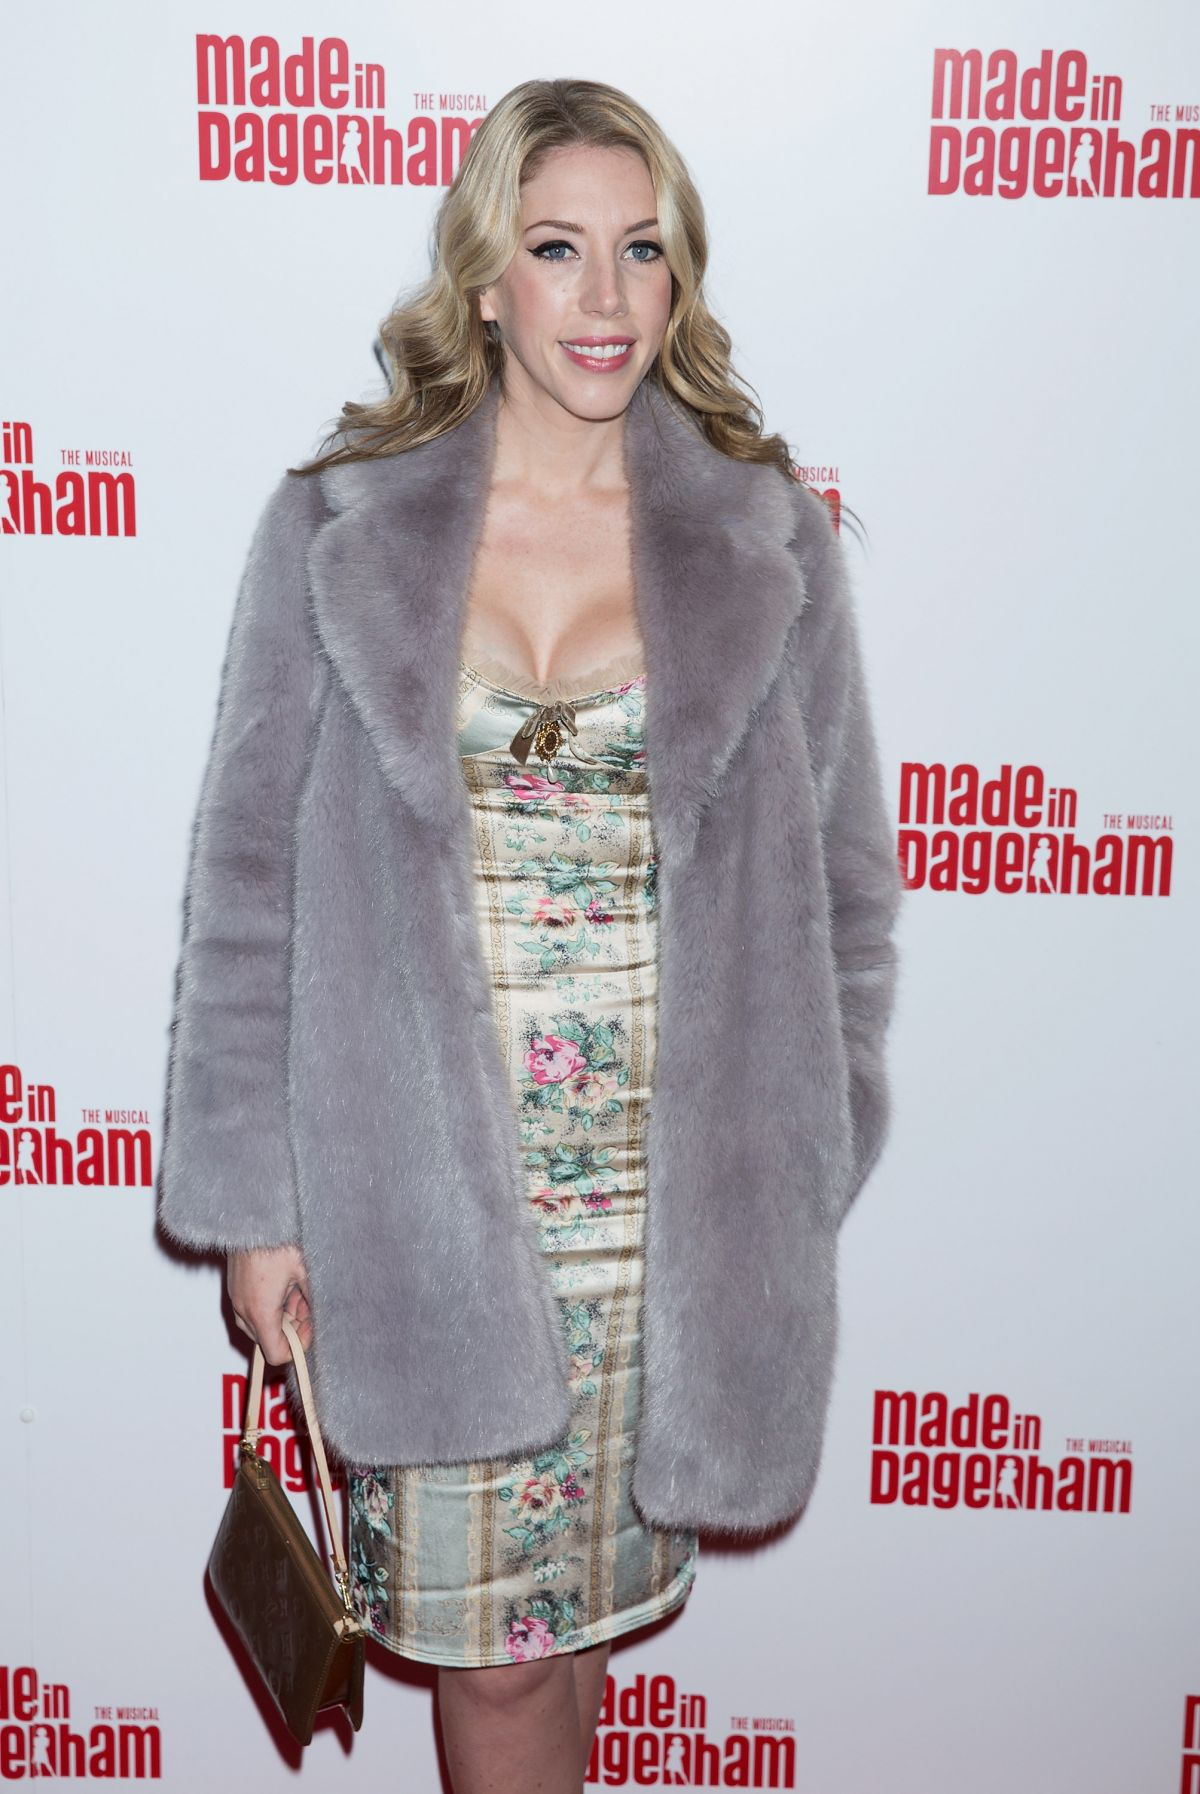 KATHERINE RYAN at Made in Dagengham Press Conference in London